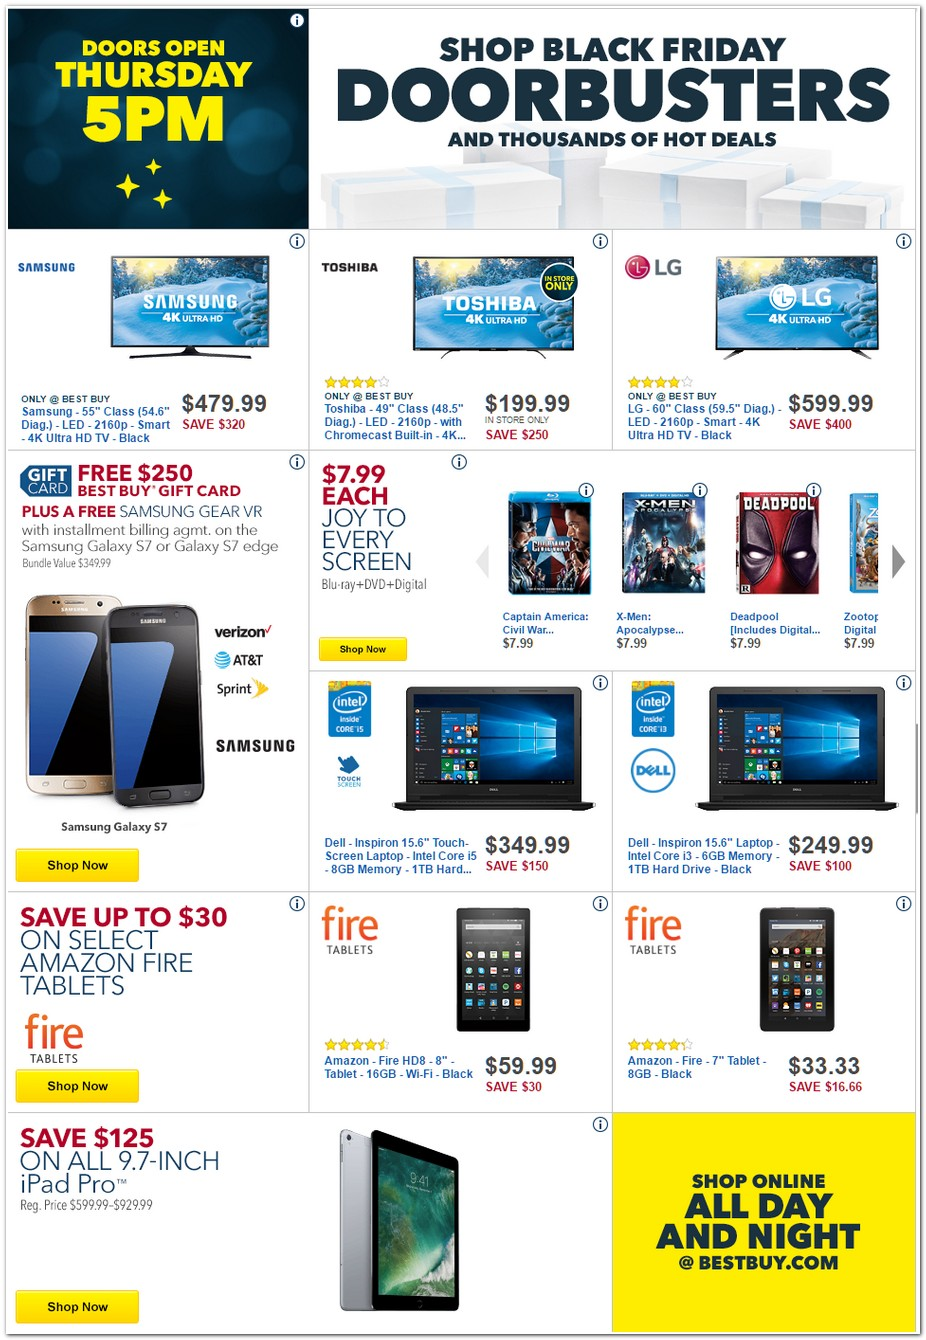 best buy black friday best buy black friday 2016 ad iphone 7 ps4 pro bundle 536